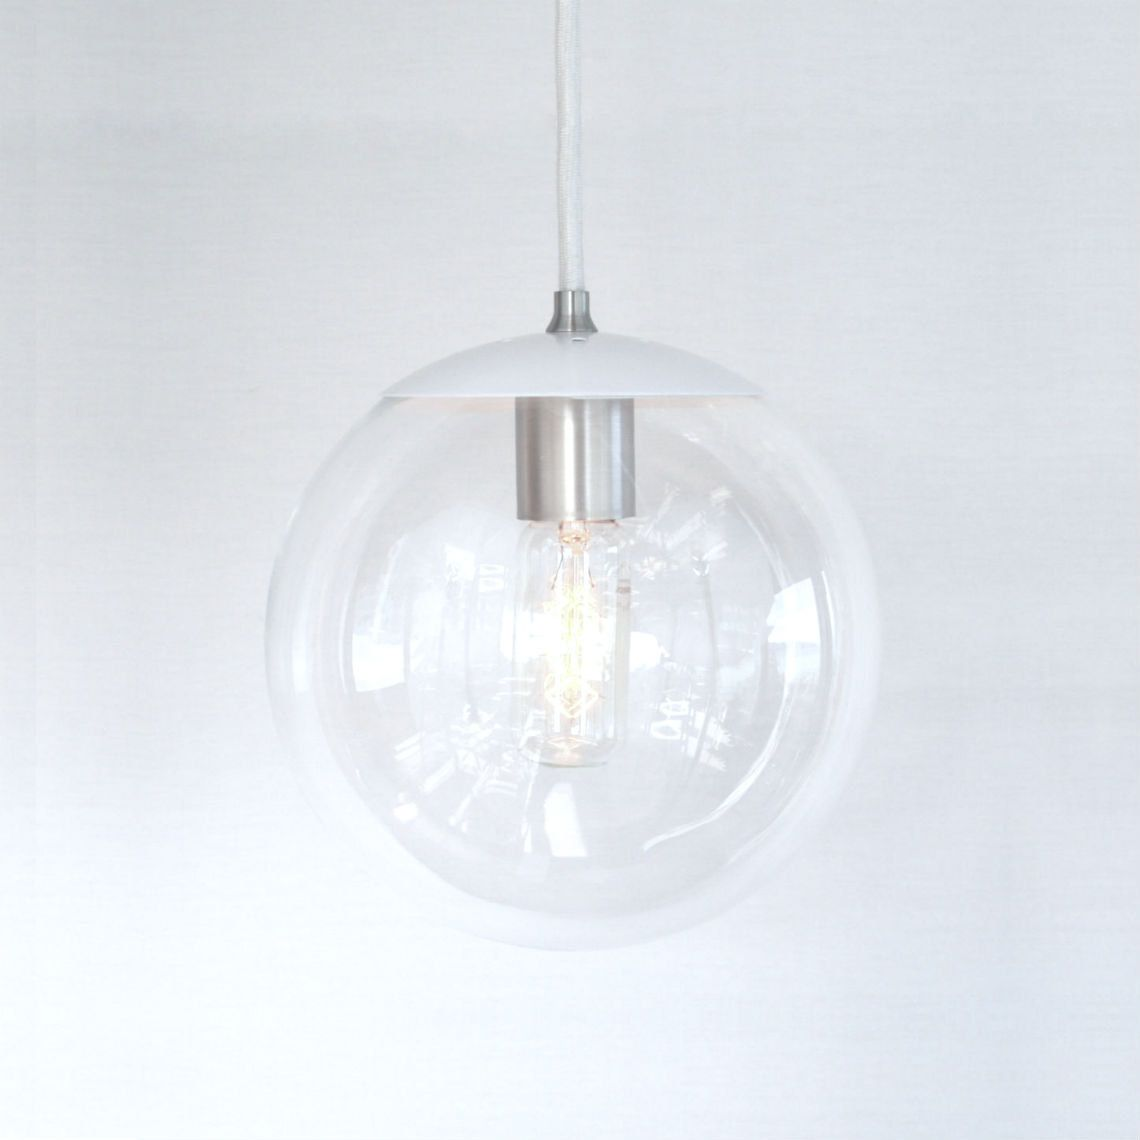 Kitchen Pendant Lighting Globes Google Search Home Pinterest - Kitchen pendant lighting globes